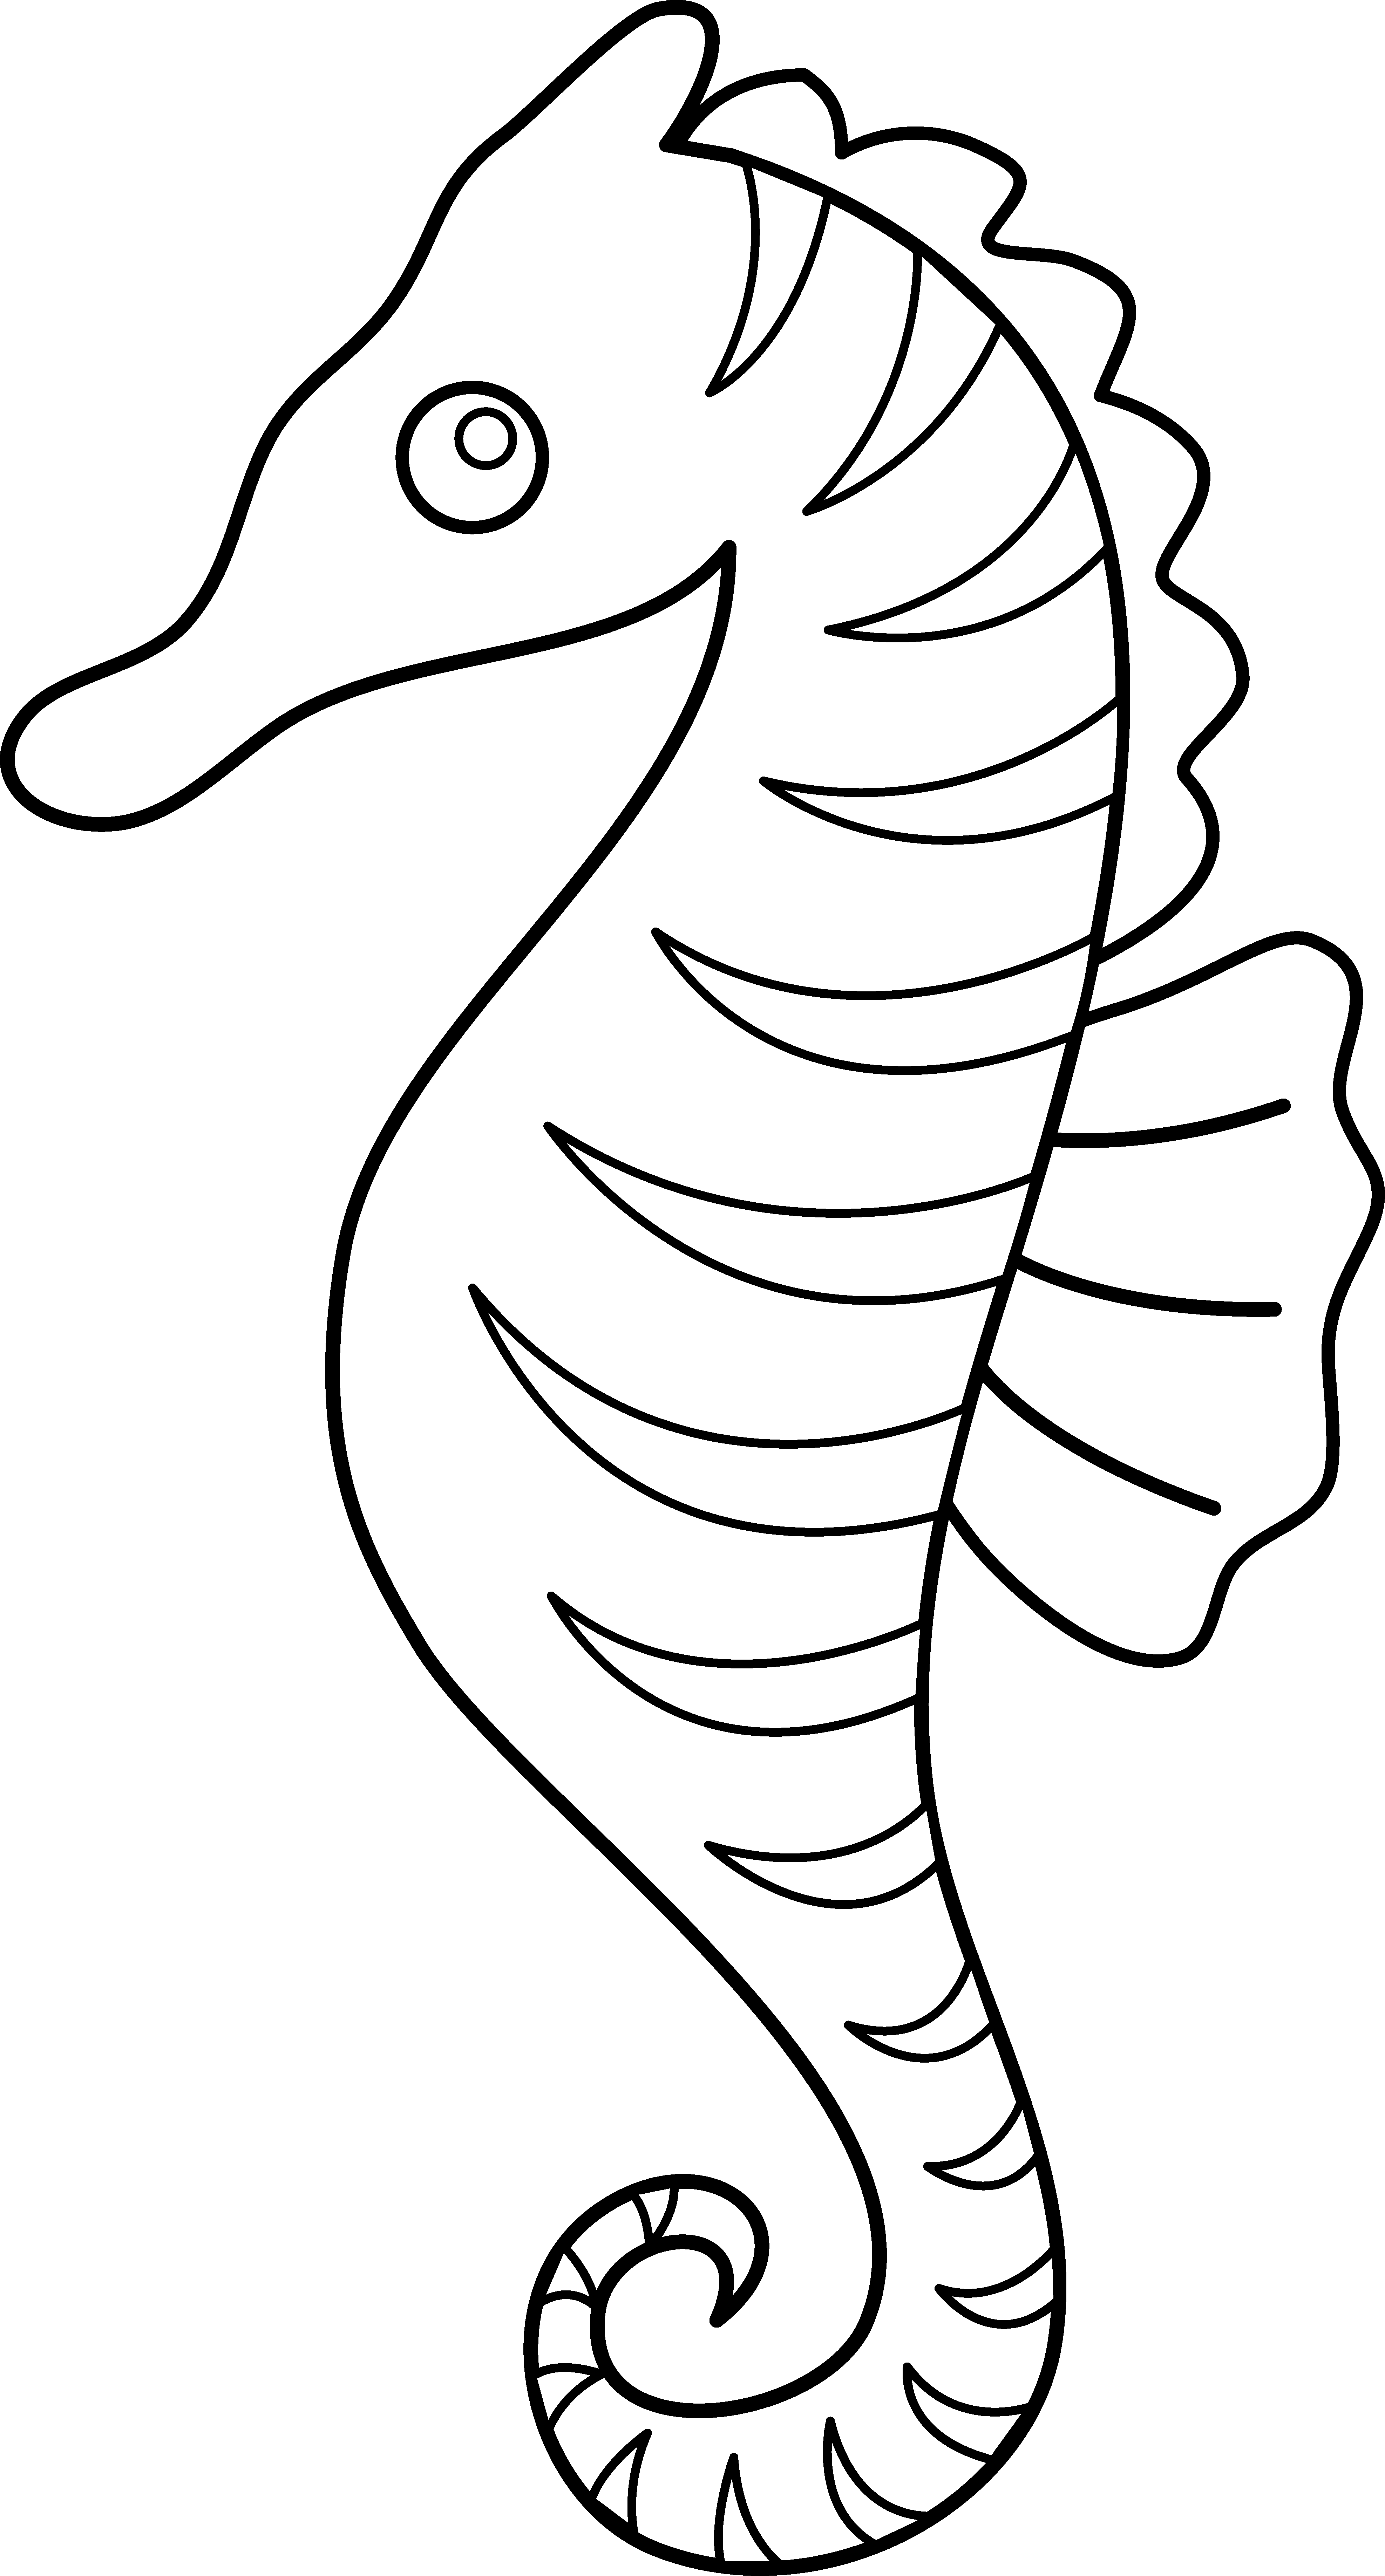 Drawing starfish seahorse. Free sea horse outline